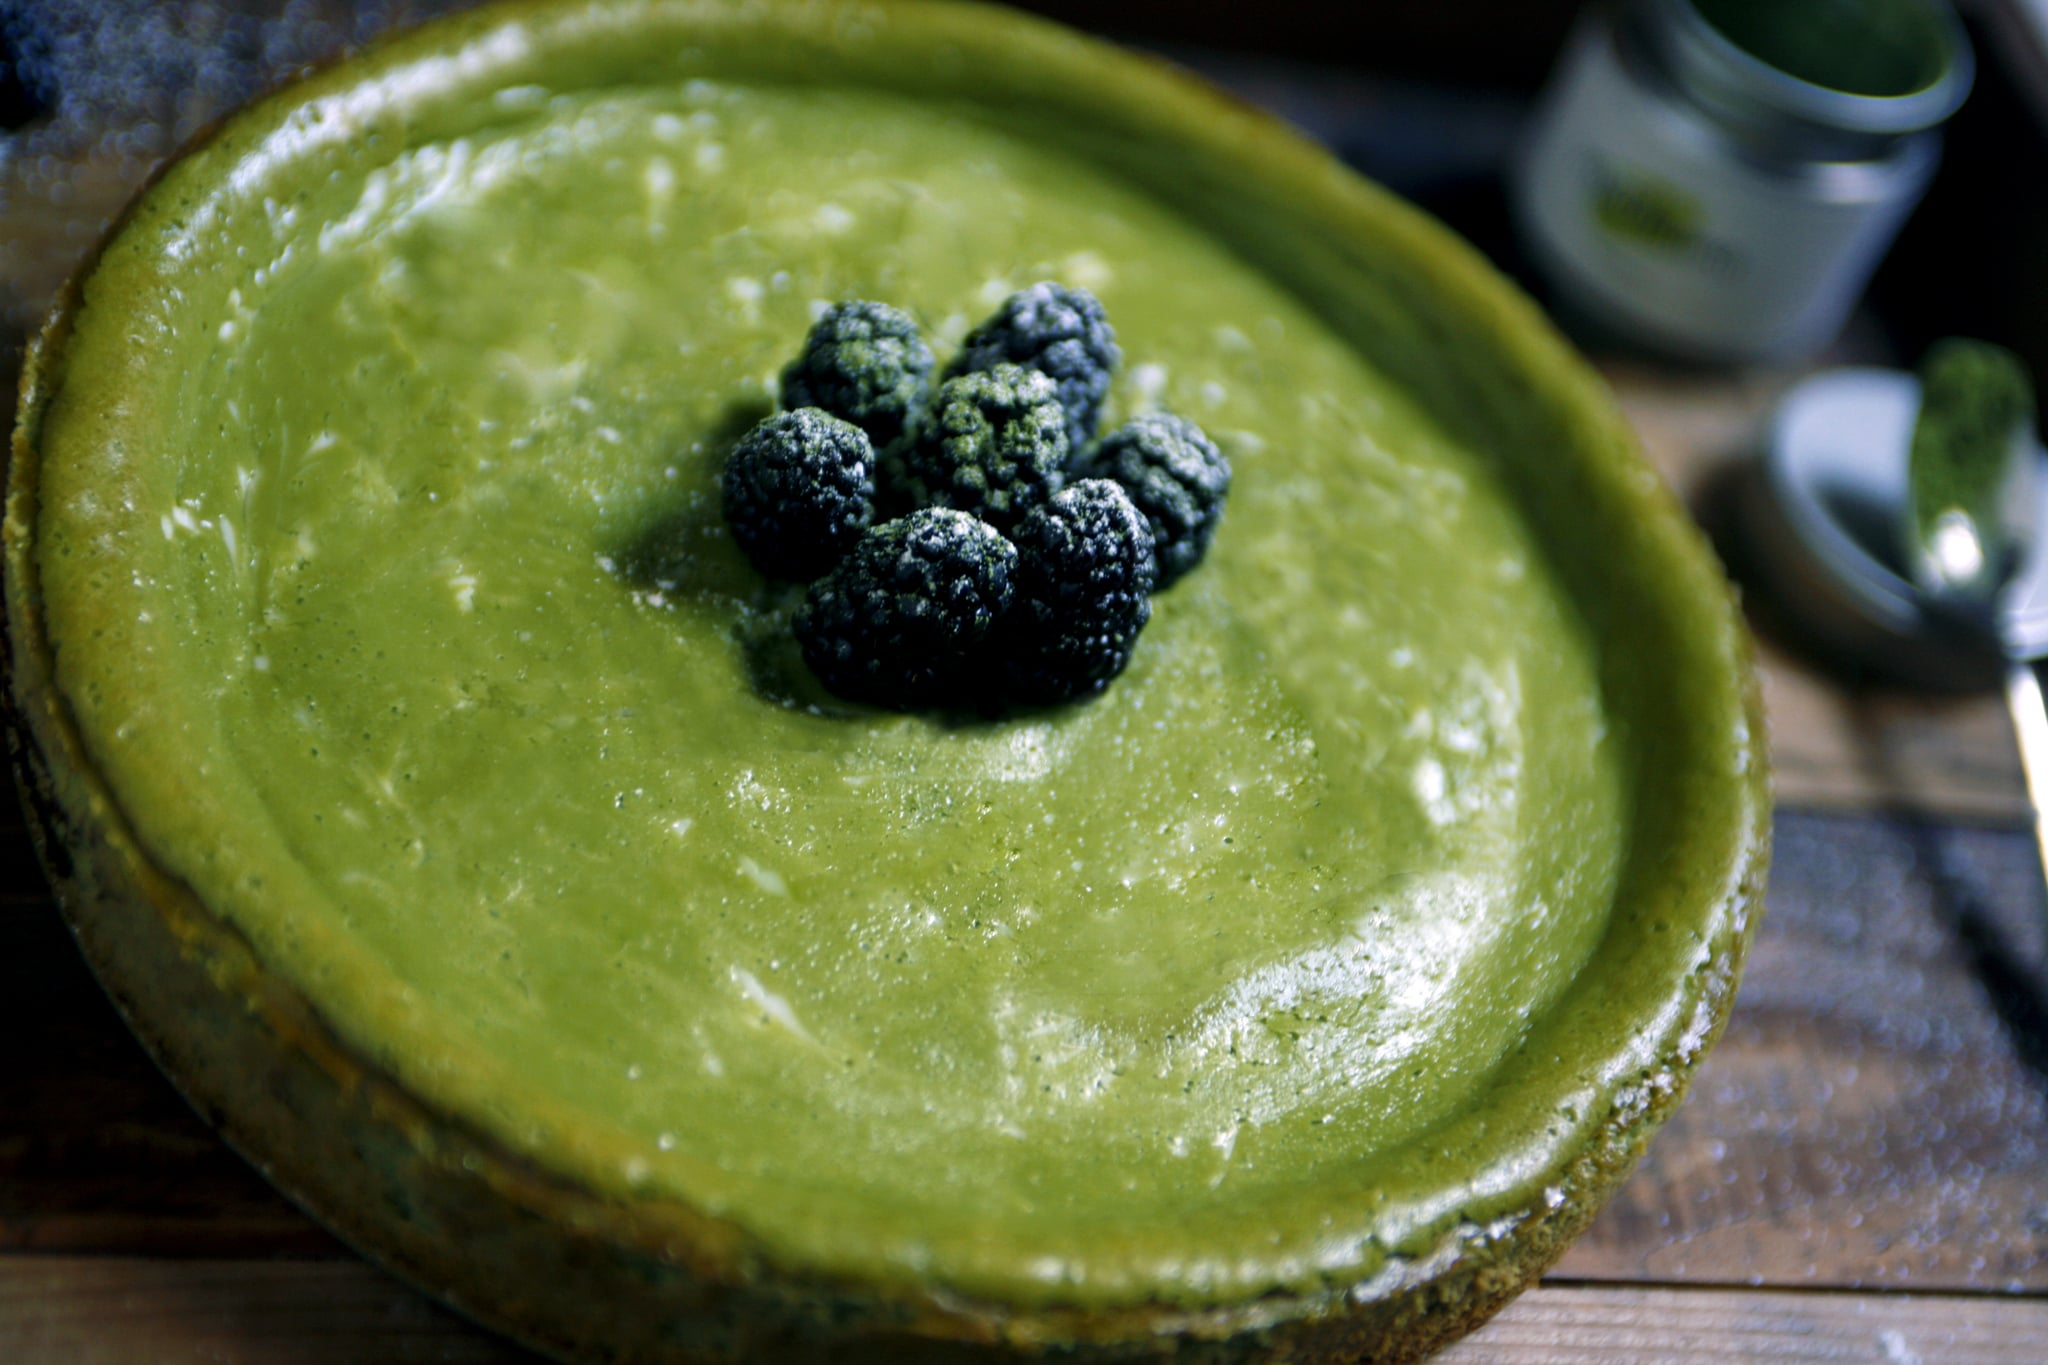 This matcha cheesecake is to die for! I put in a tad extra green tea powder for more vibrancy with the coloring.